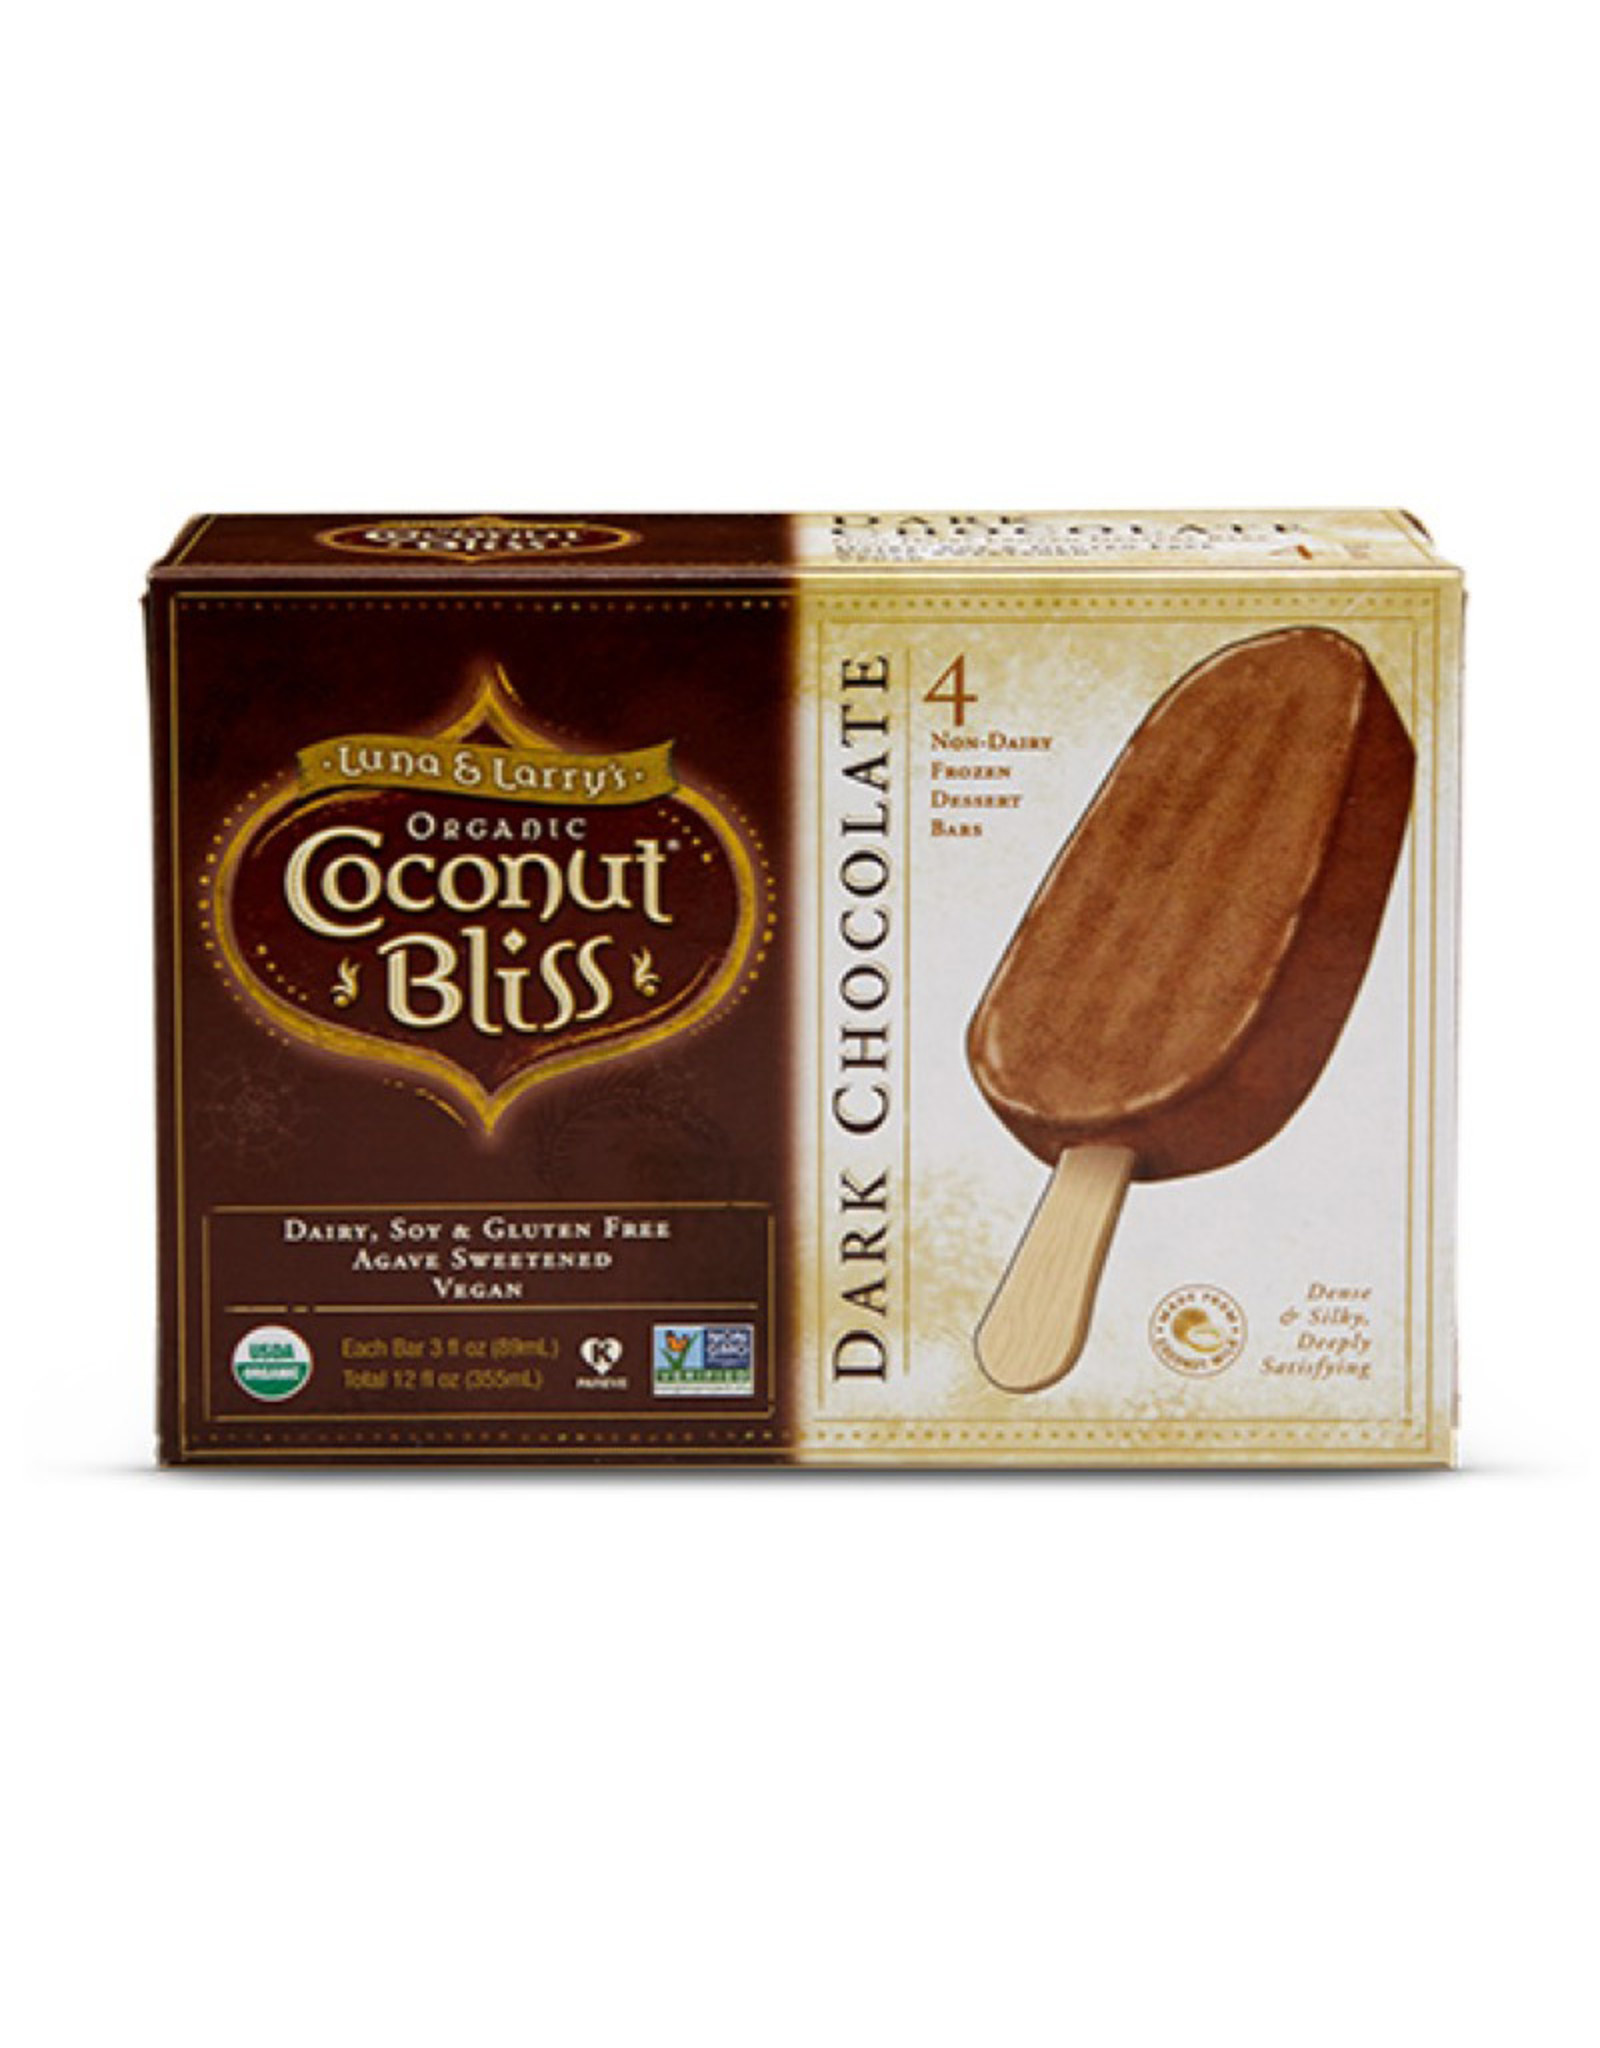 Coconut Bliss Coconut Bliss - Ice Cream Bars, Dark Chocolate (Box of 4)